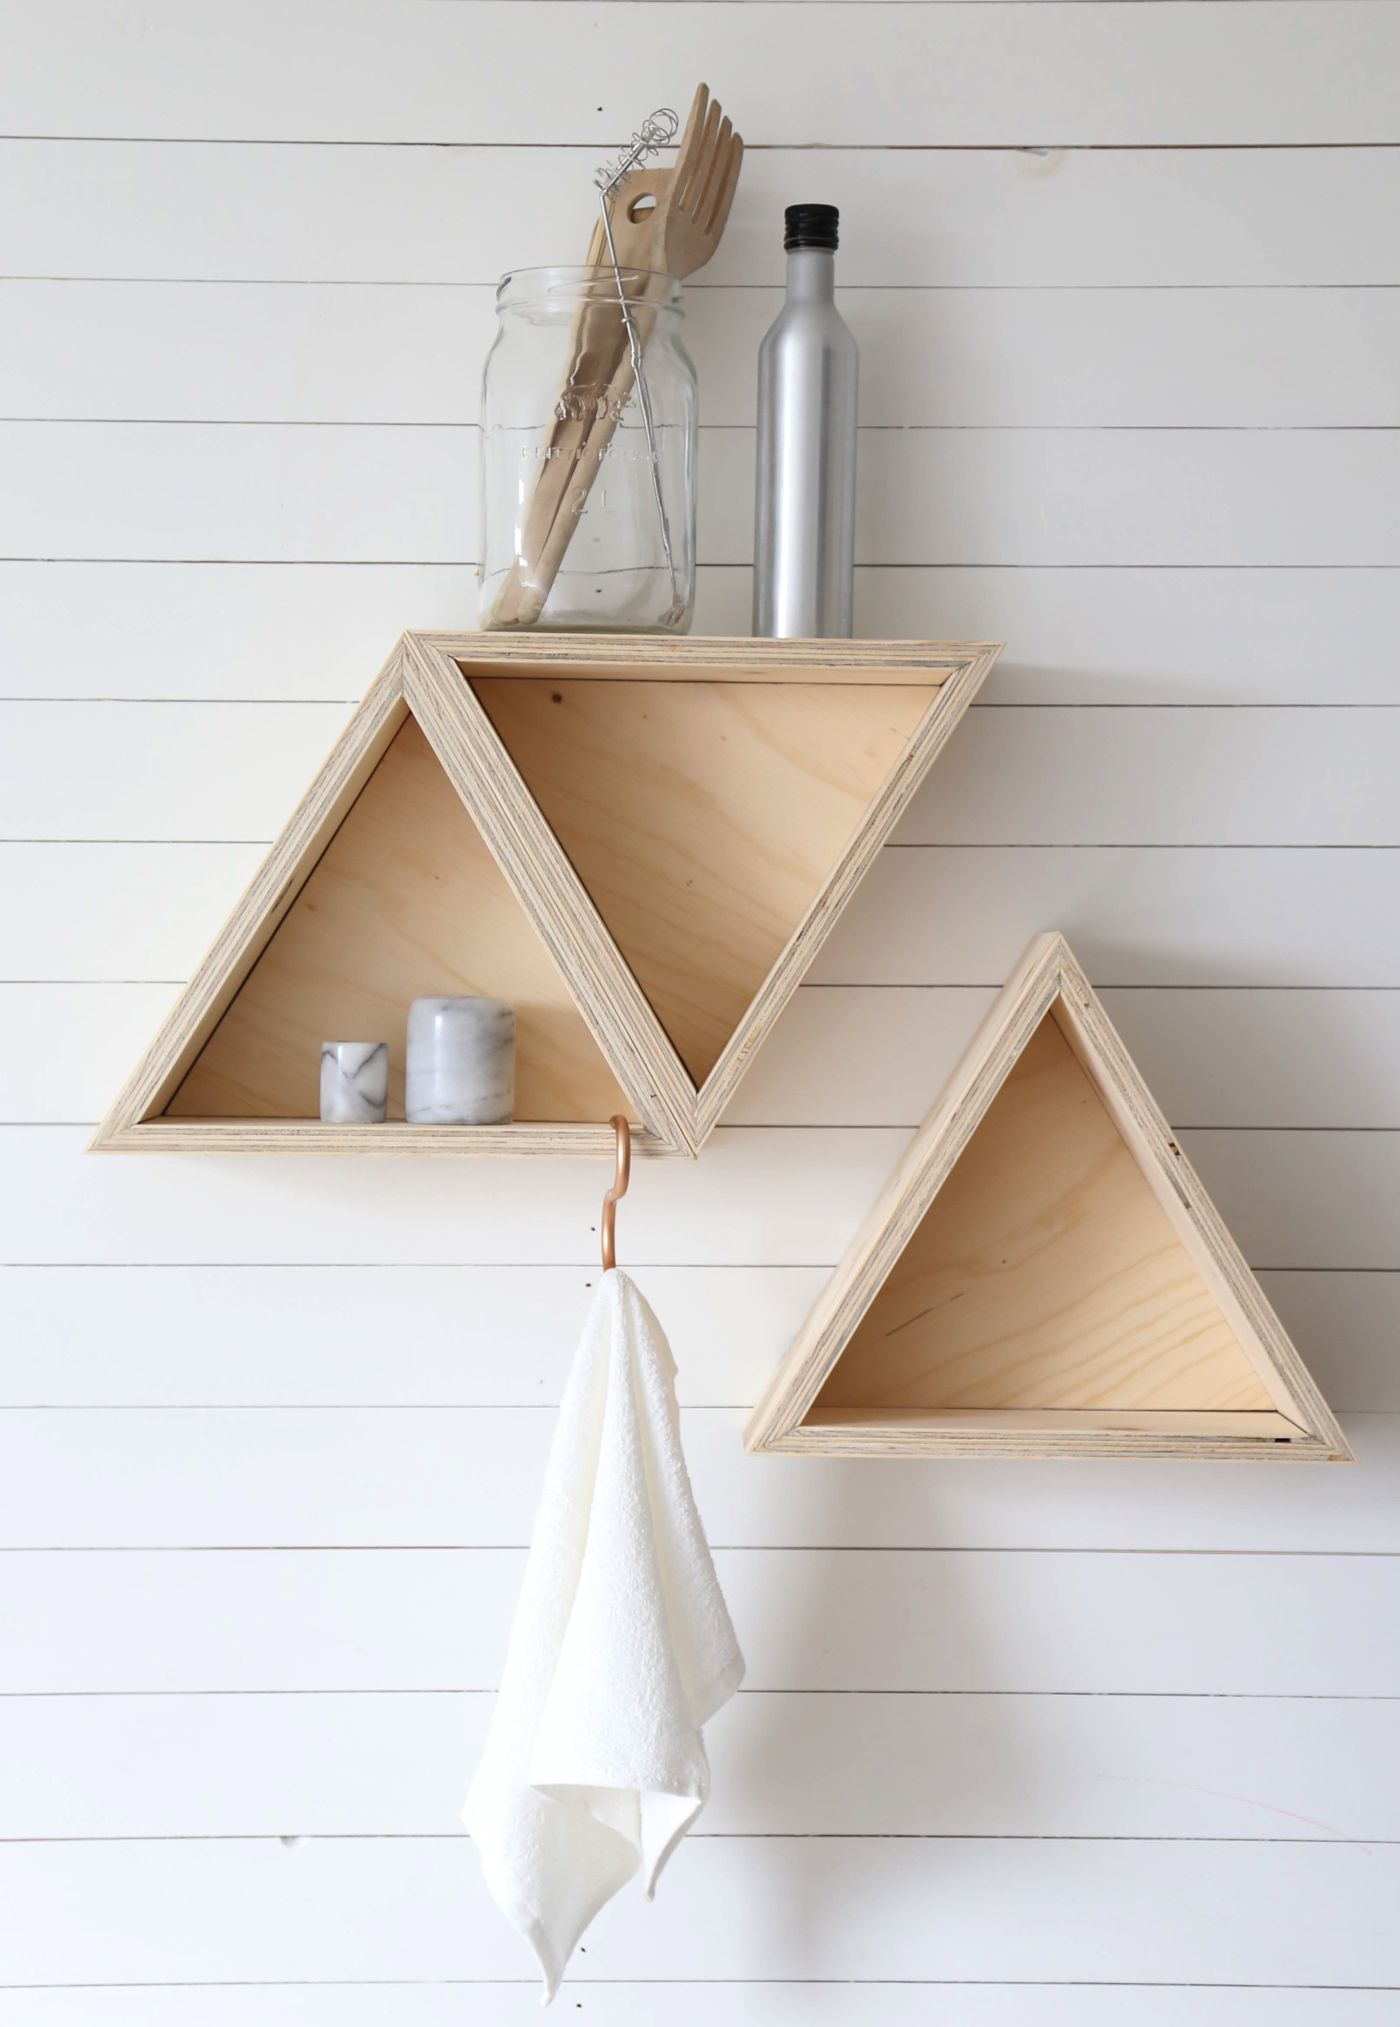 4 fantastically creative wooden shelves and racks (3)